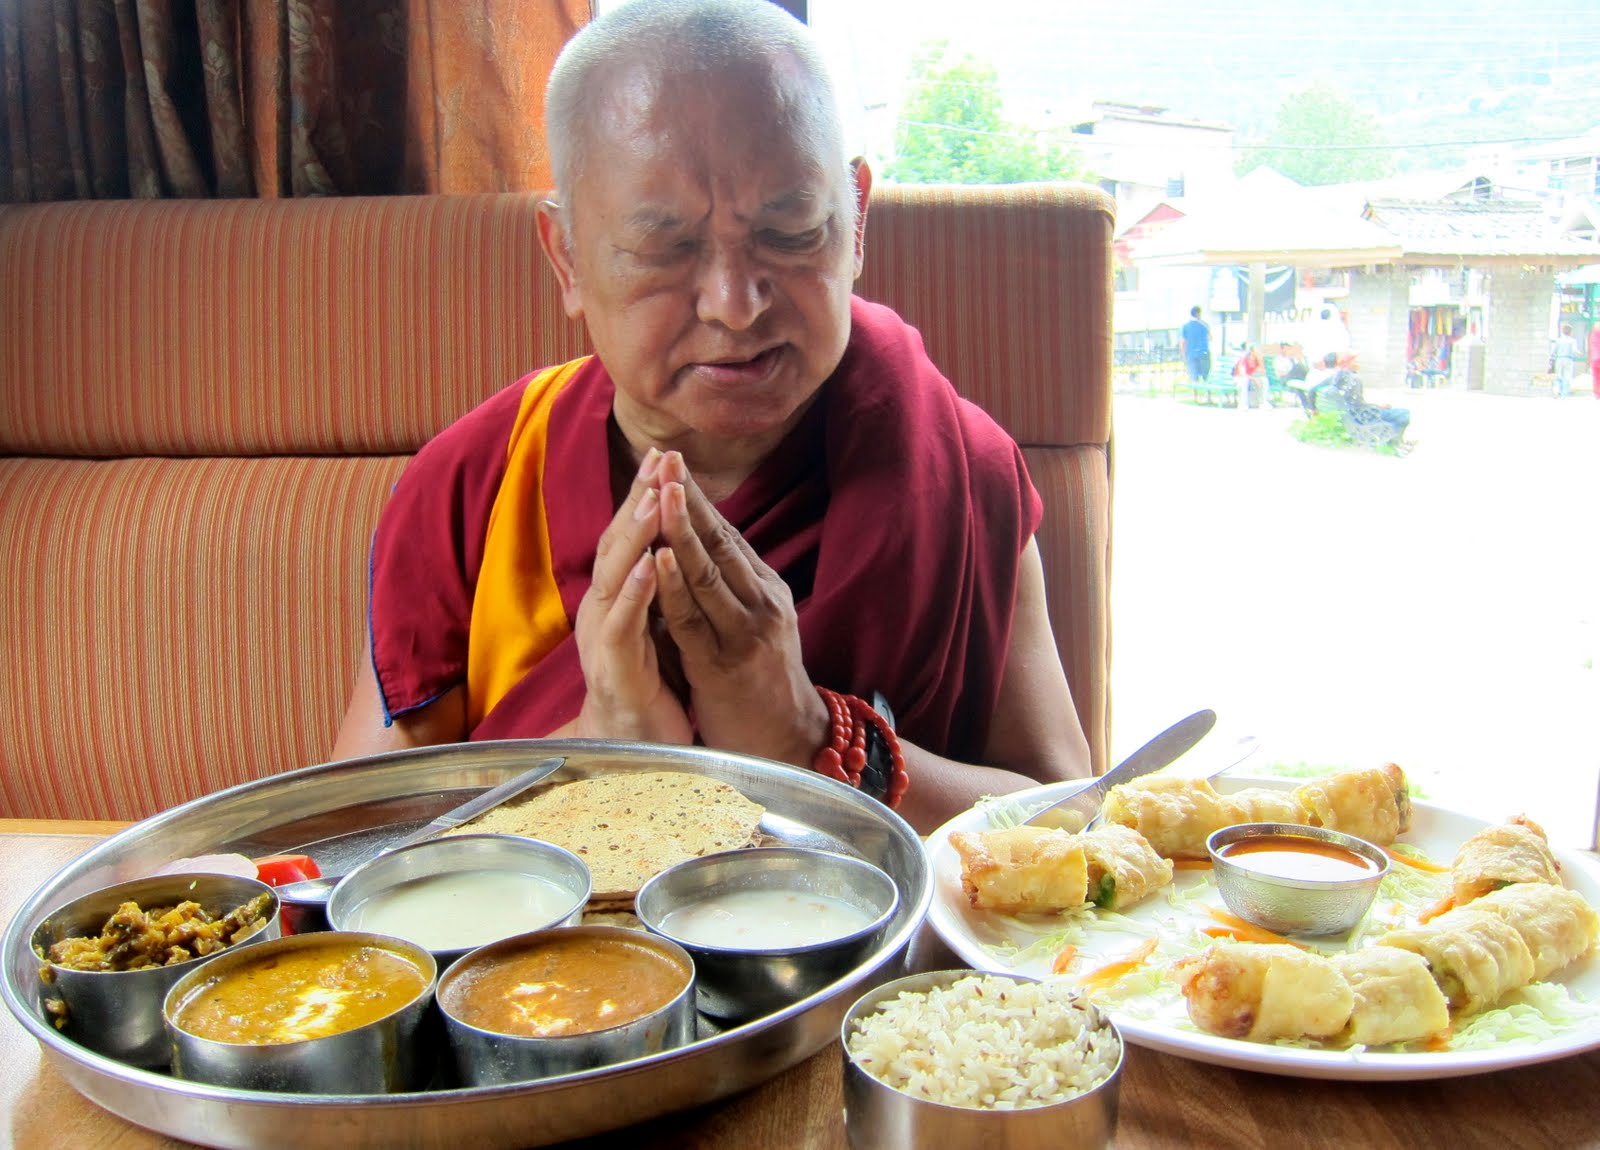 Rinpoche blessing lunch in Manali, India, July 30, 2013. Photo: Ven. Sarah Thresher